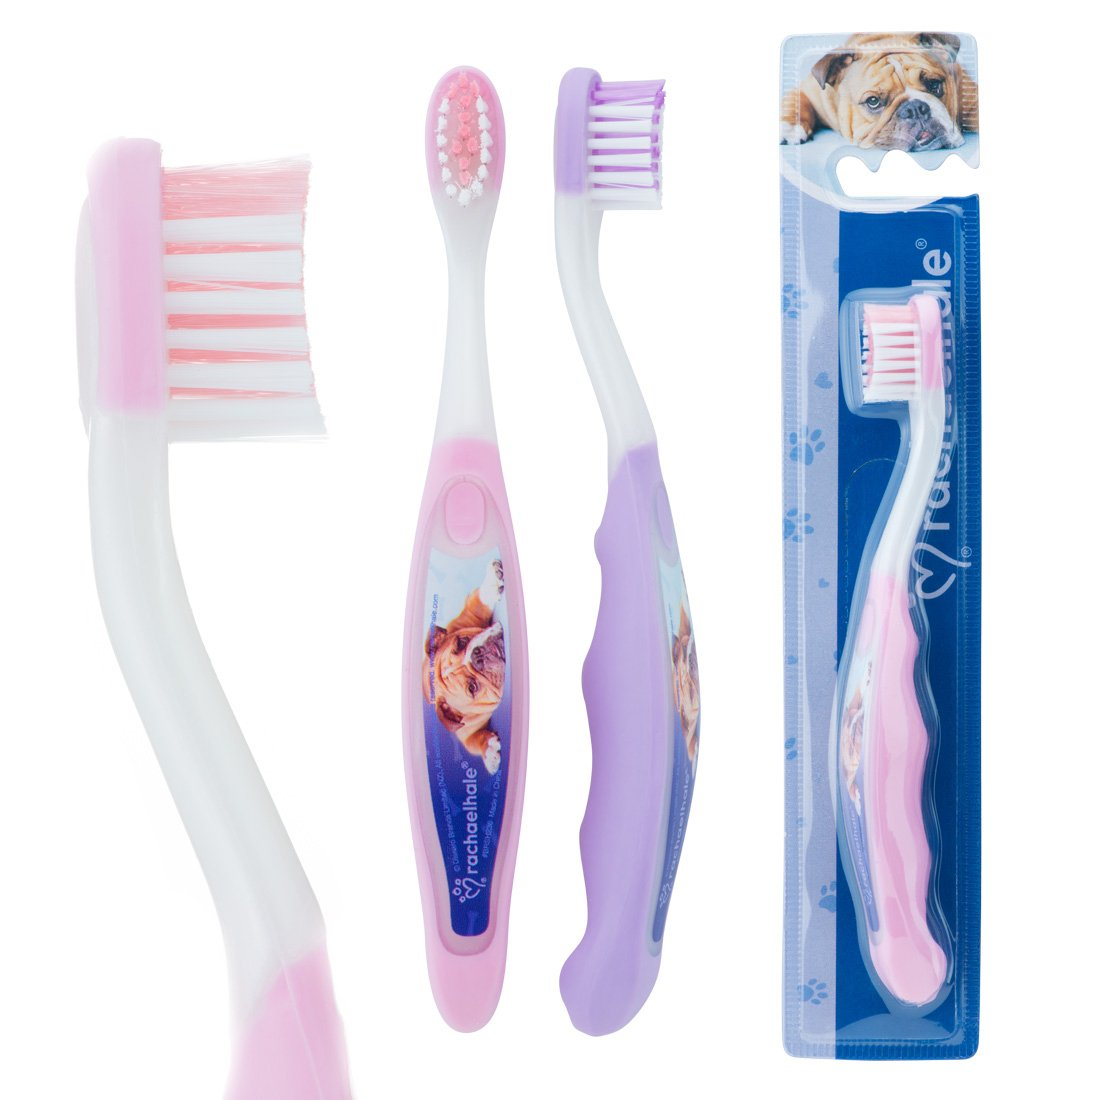 SmileCare Rachael Hale Toddler Toothbrushes - Dental Hygiene Products - 48 per Pack SmileMakers